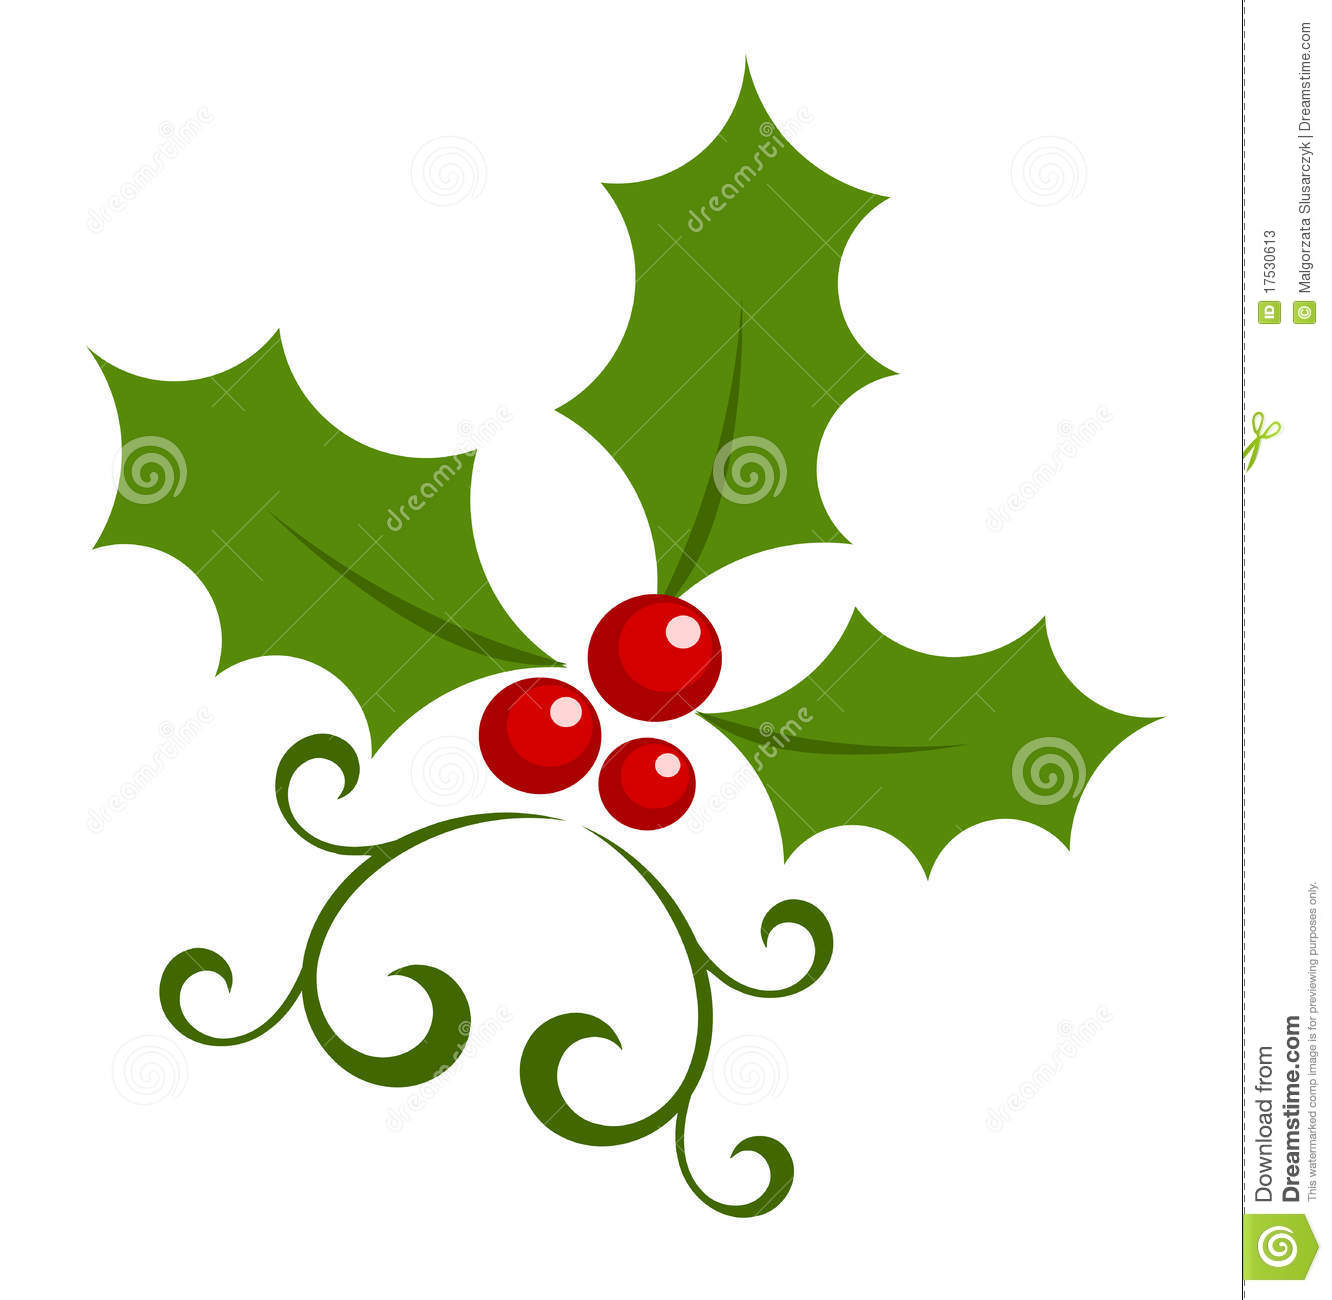 Holly berry icon stock photos image 17530613 for Holl image